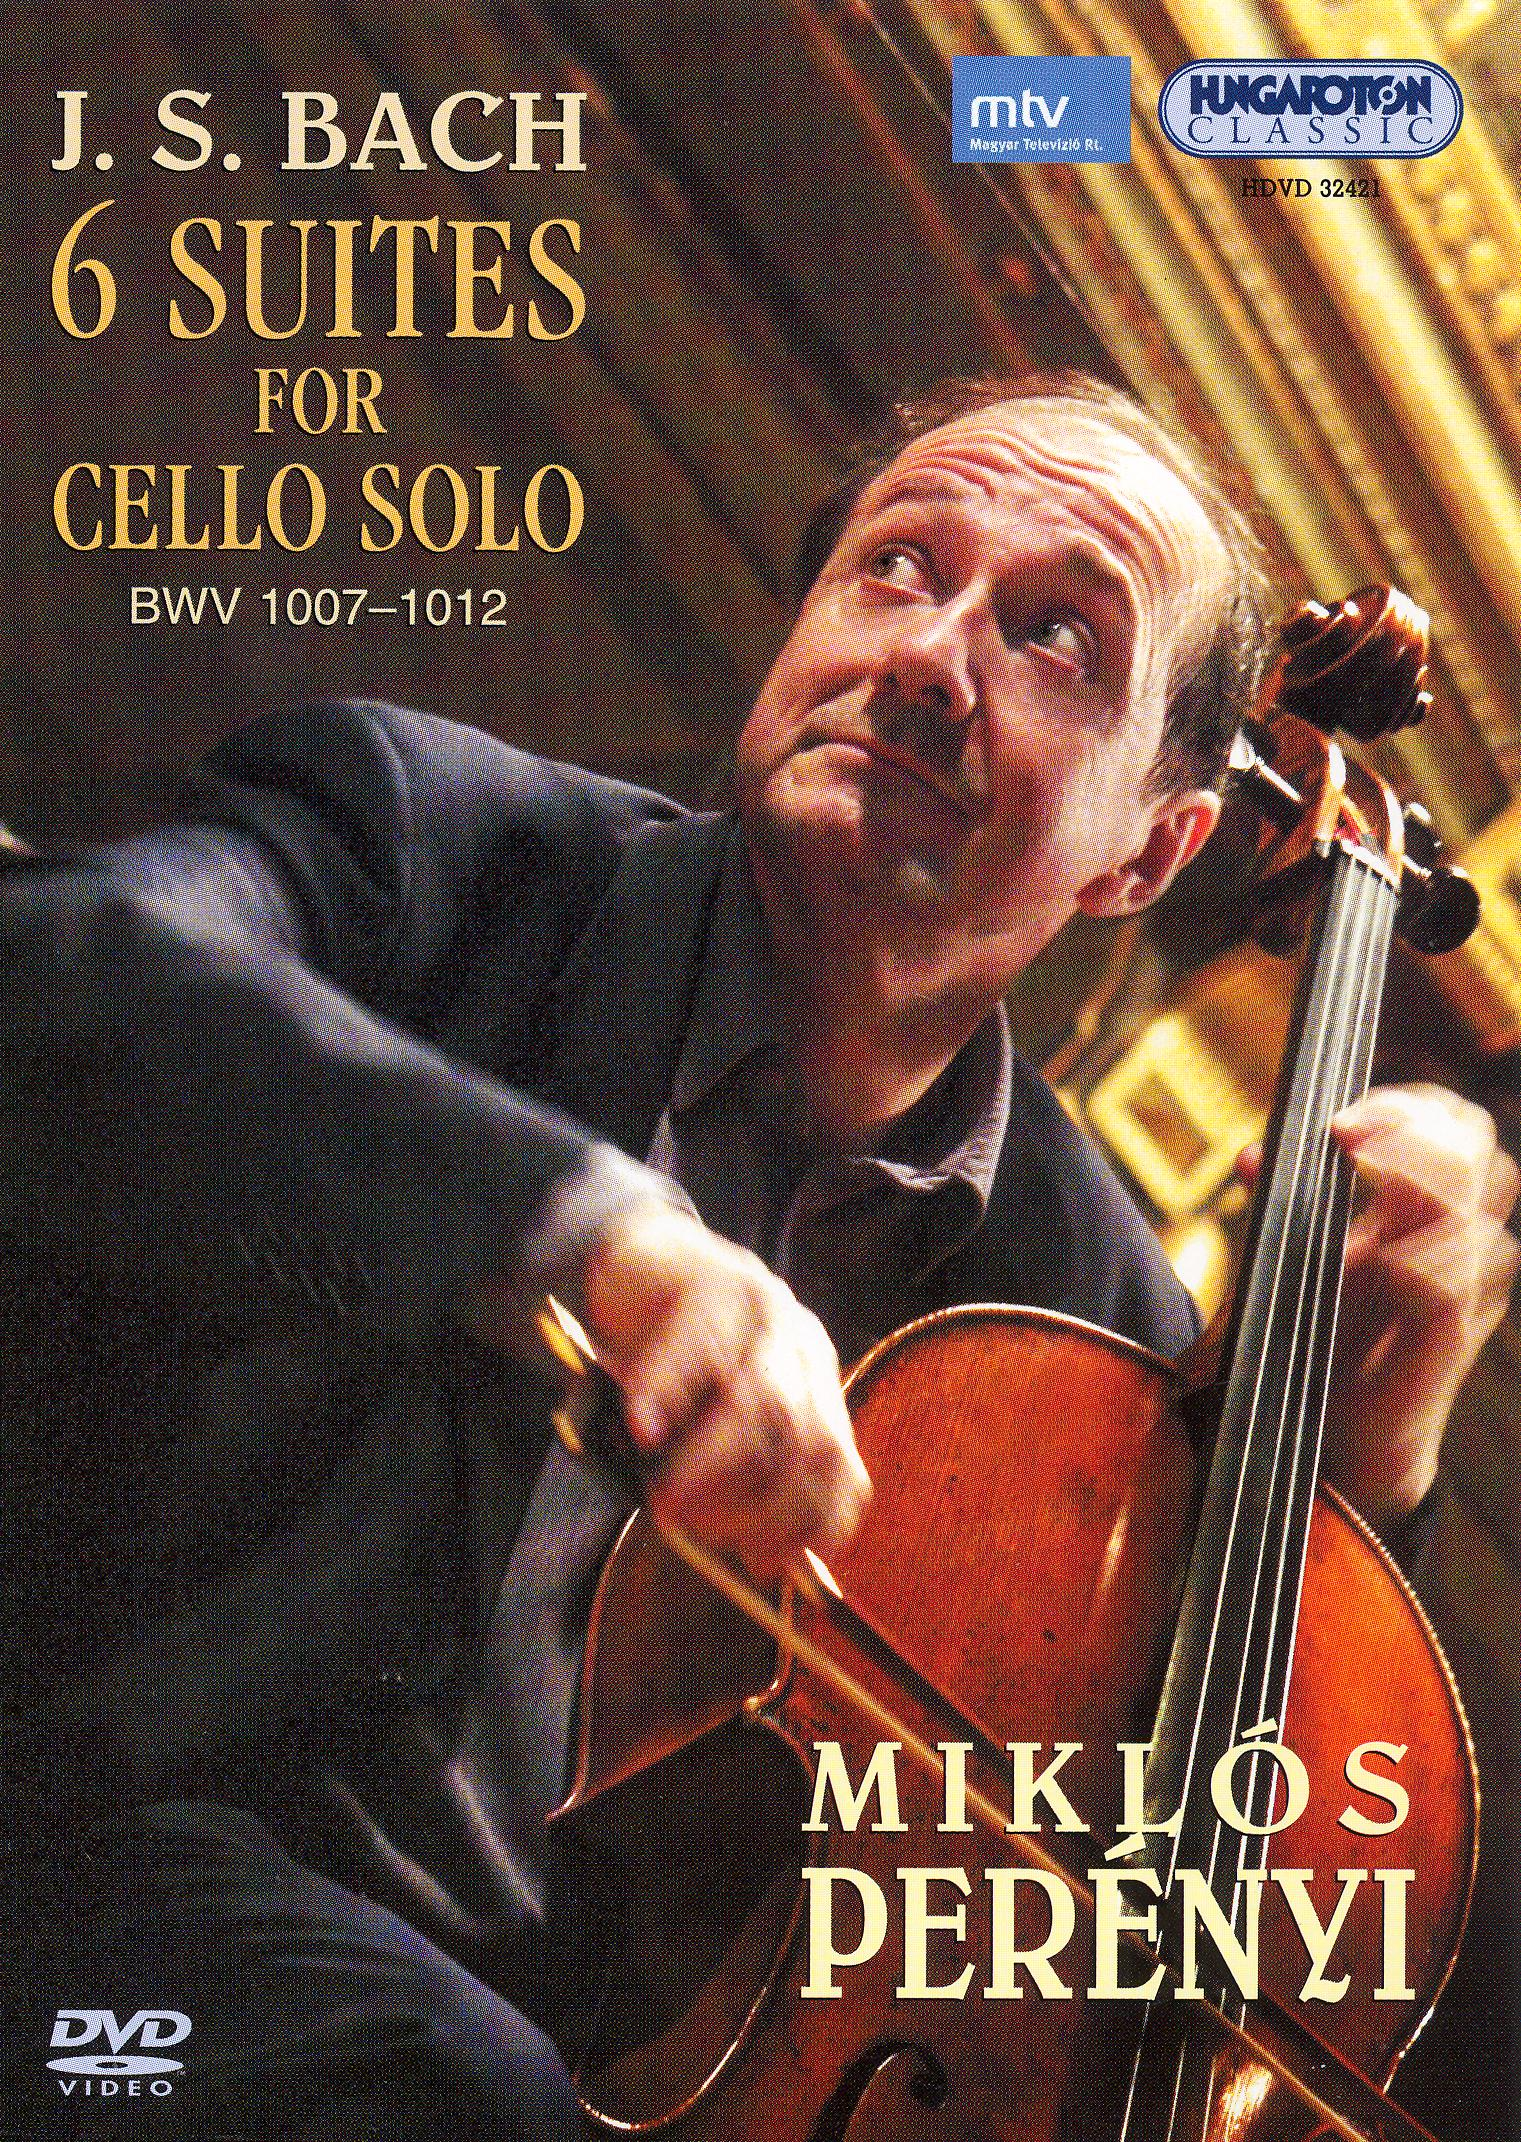 Miklos Perenyi: J.S. Bach - 6 Suites for Cello Solo, BWV 1007-1012